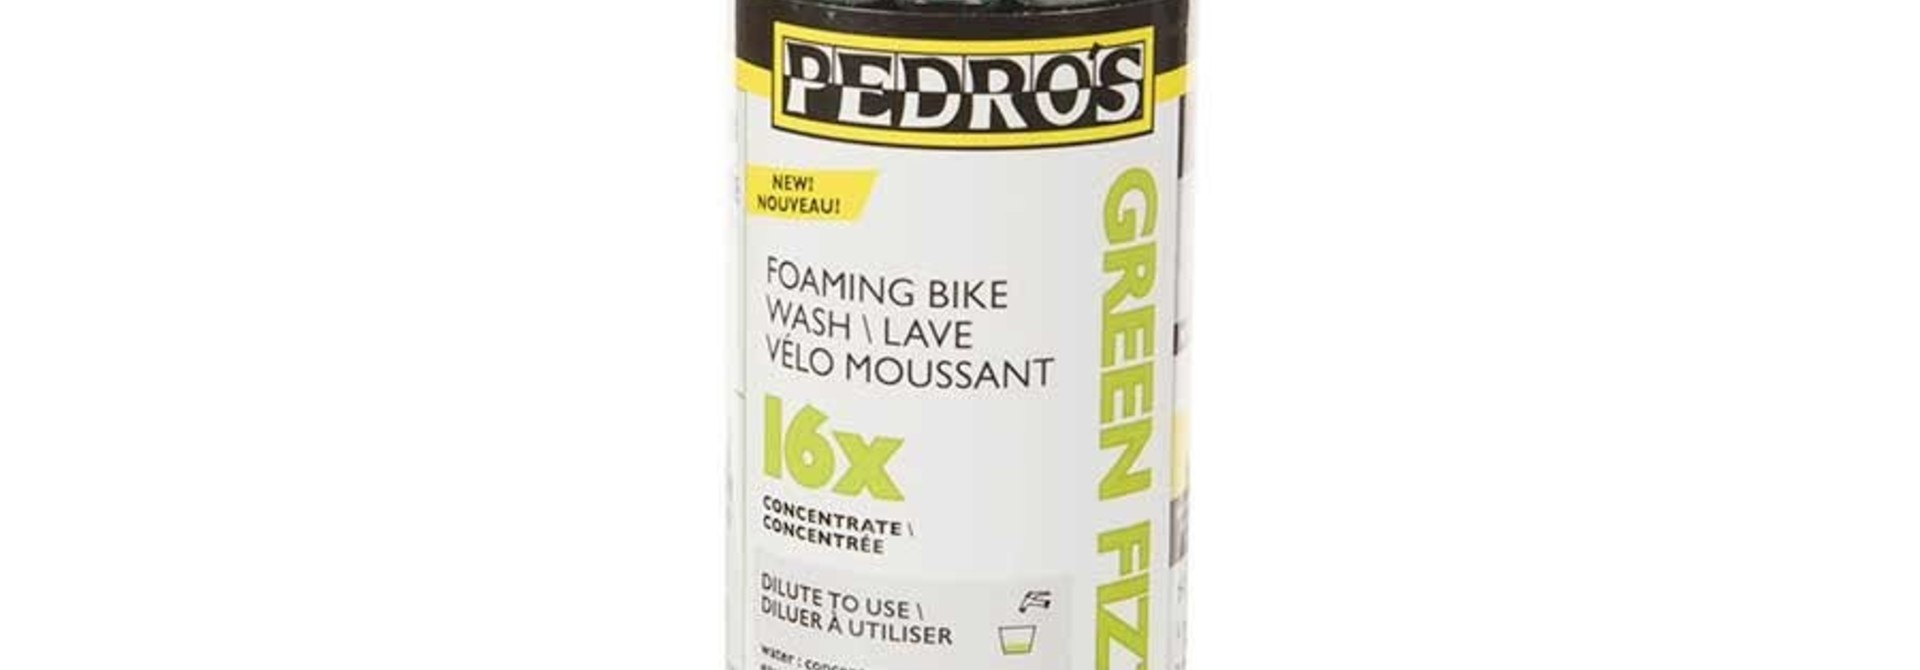 Pedros, Green Fizz 16X, Concentrated bike wash, 4oz/ 120ml